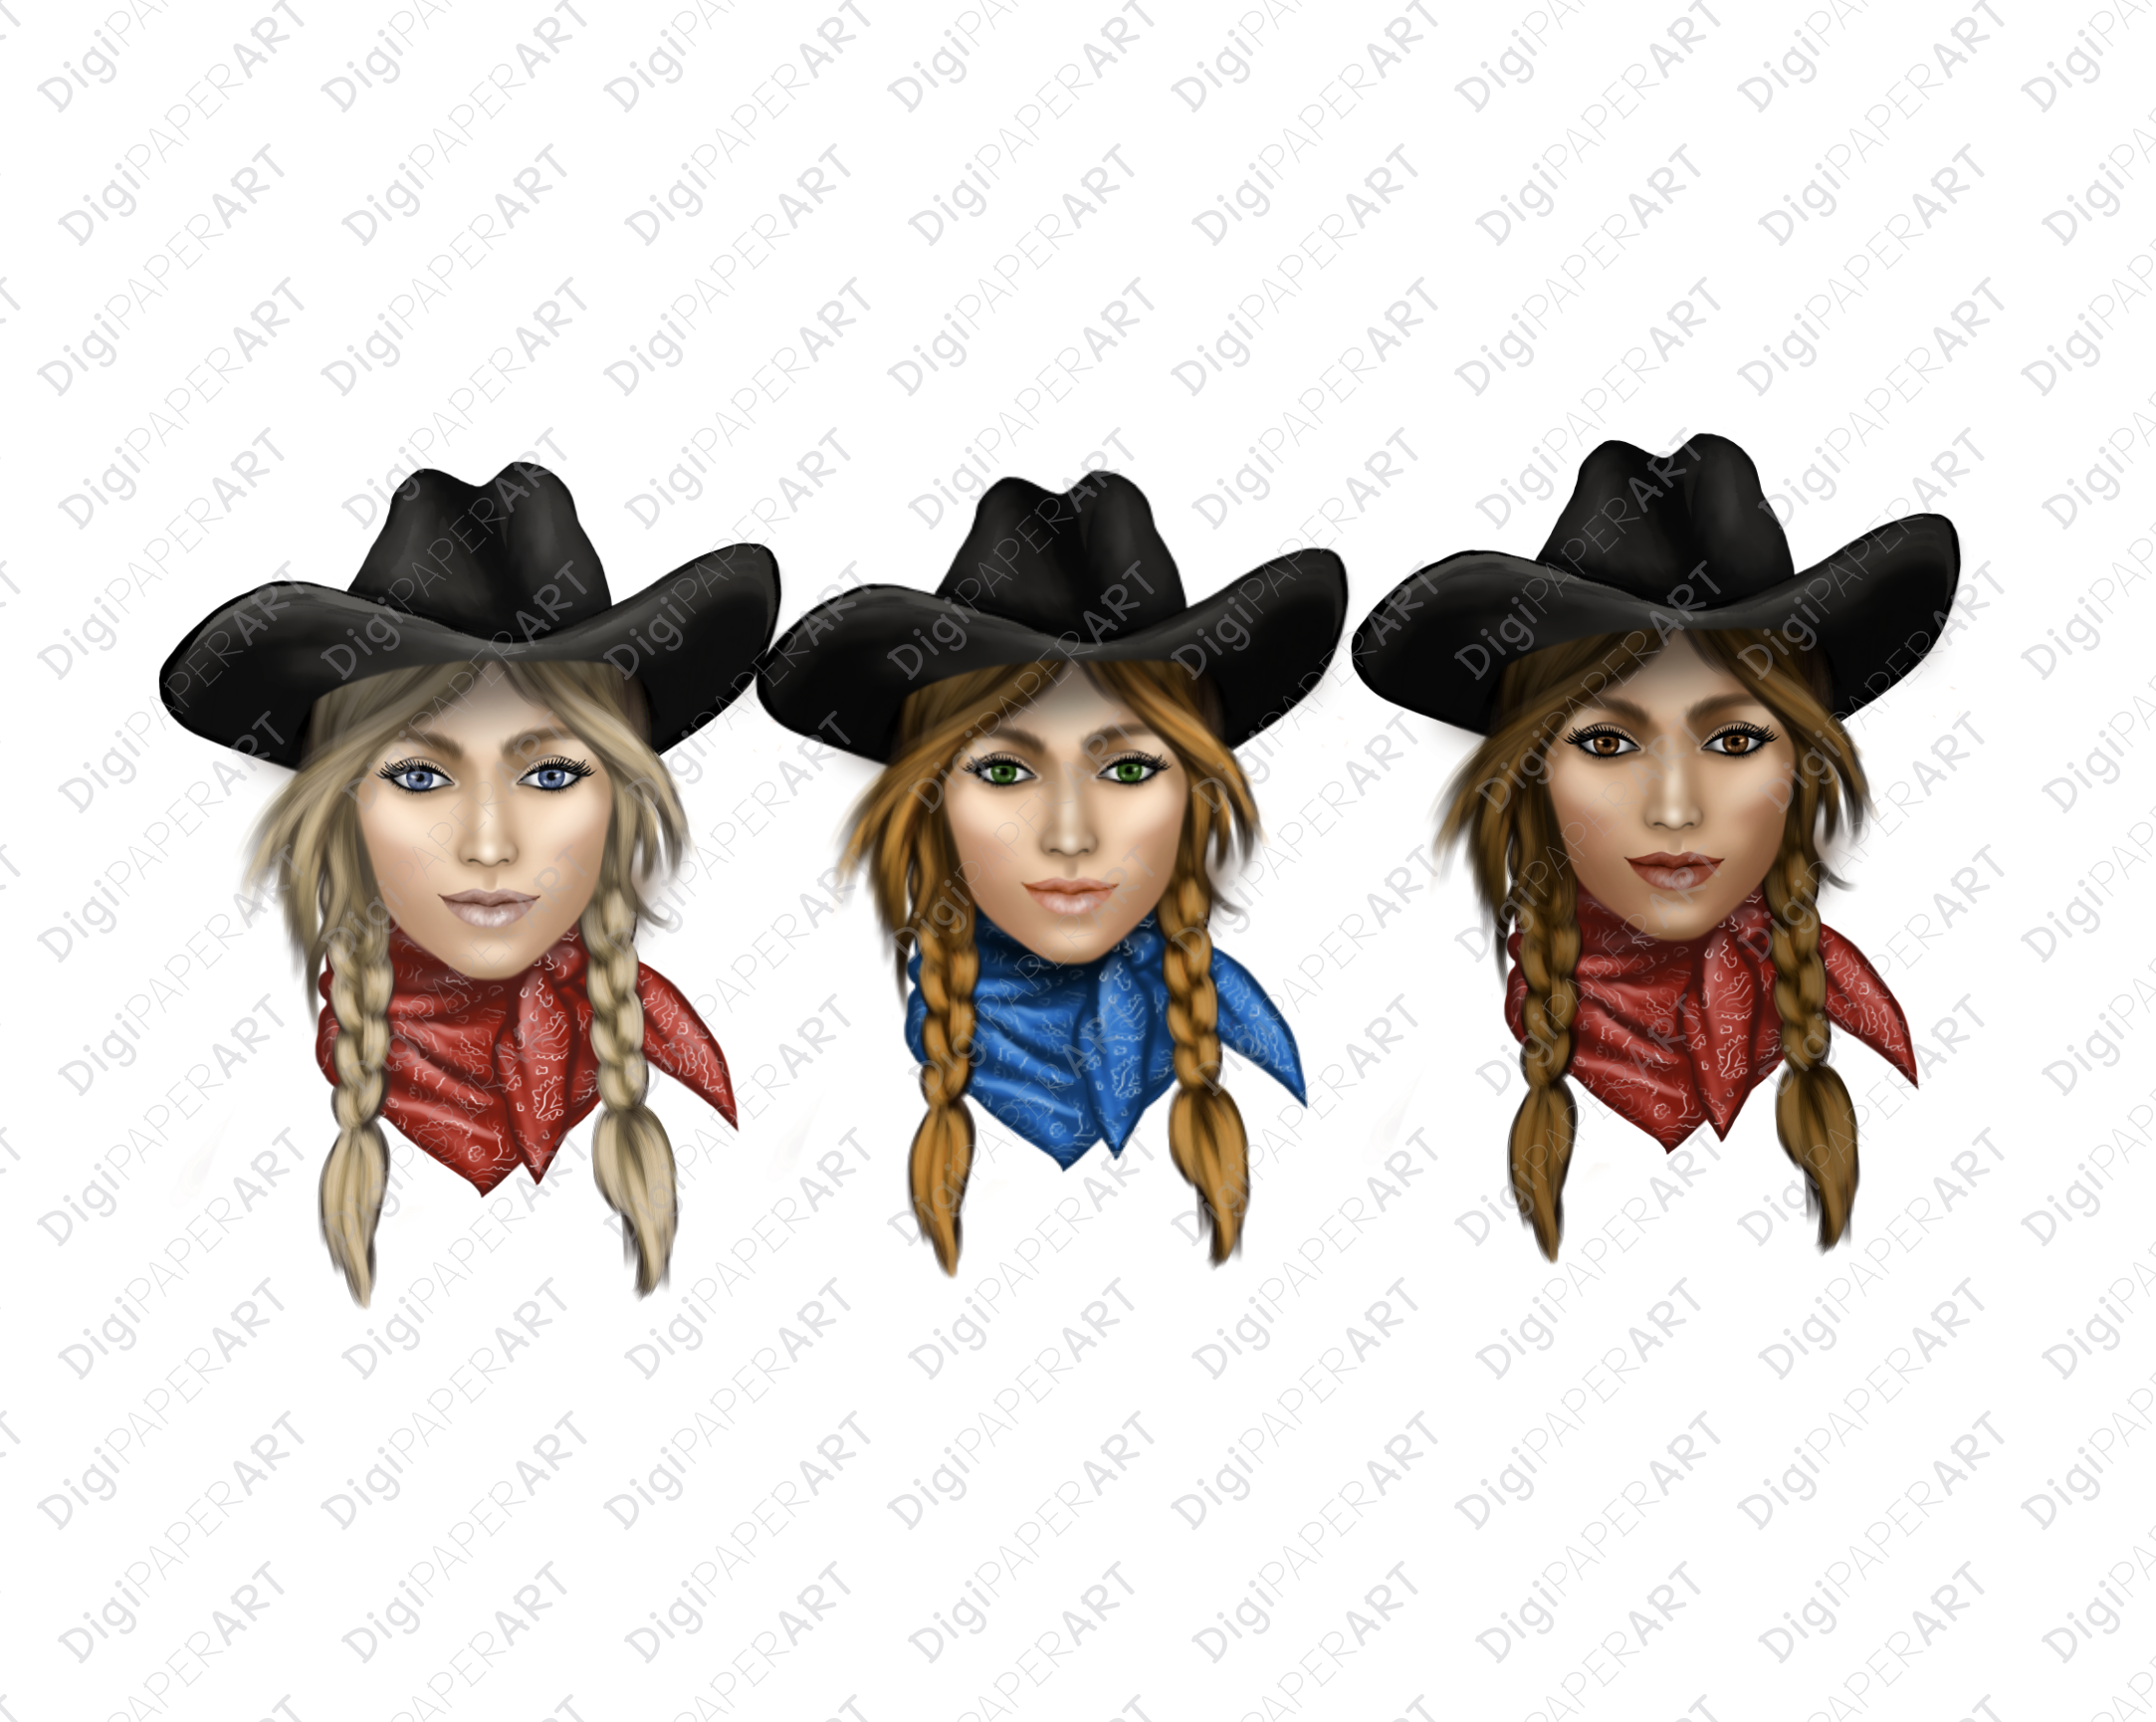 Cowgirl Face PNG, Western Clip Art, Wild West PNG example image 2